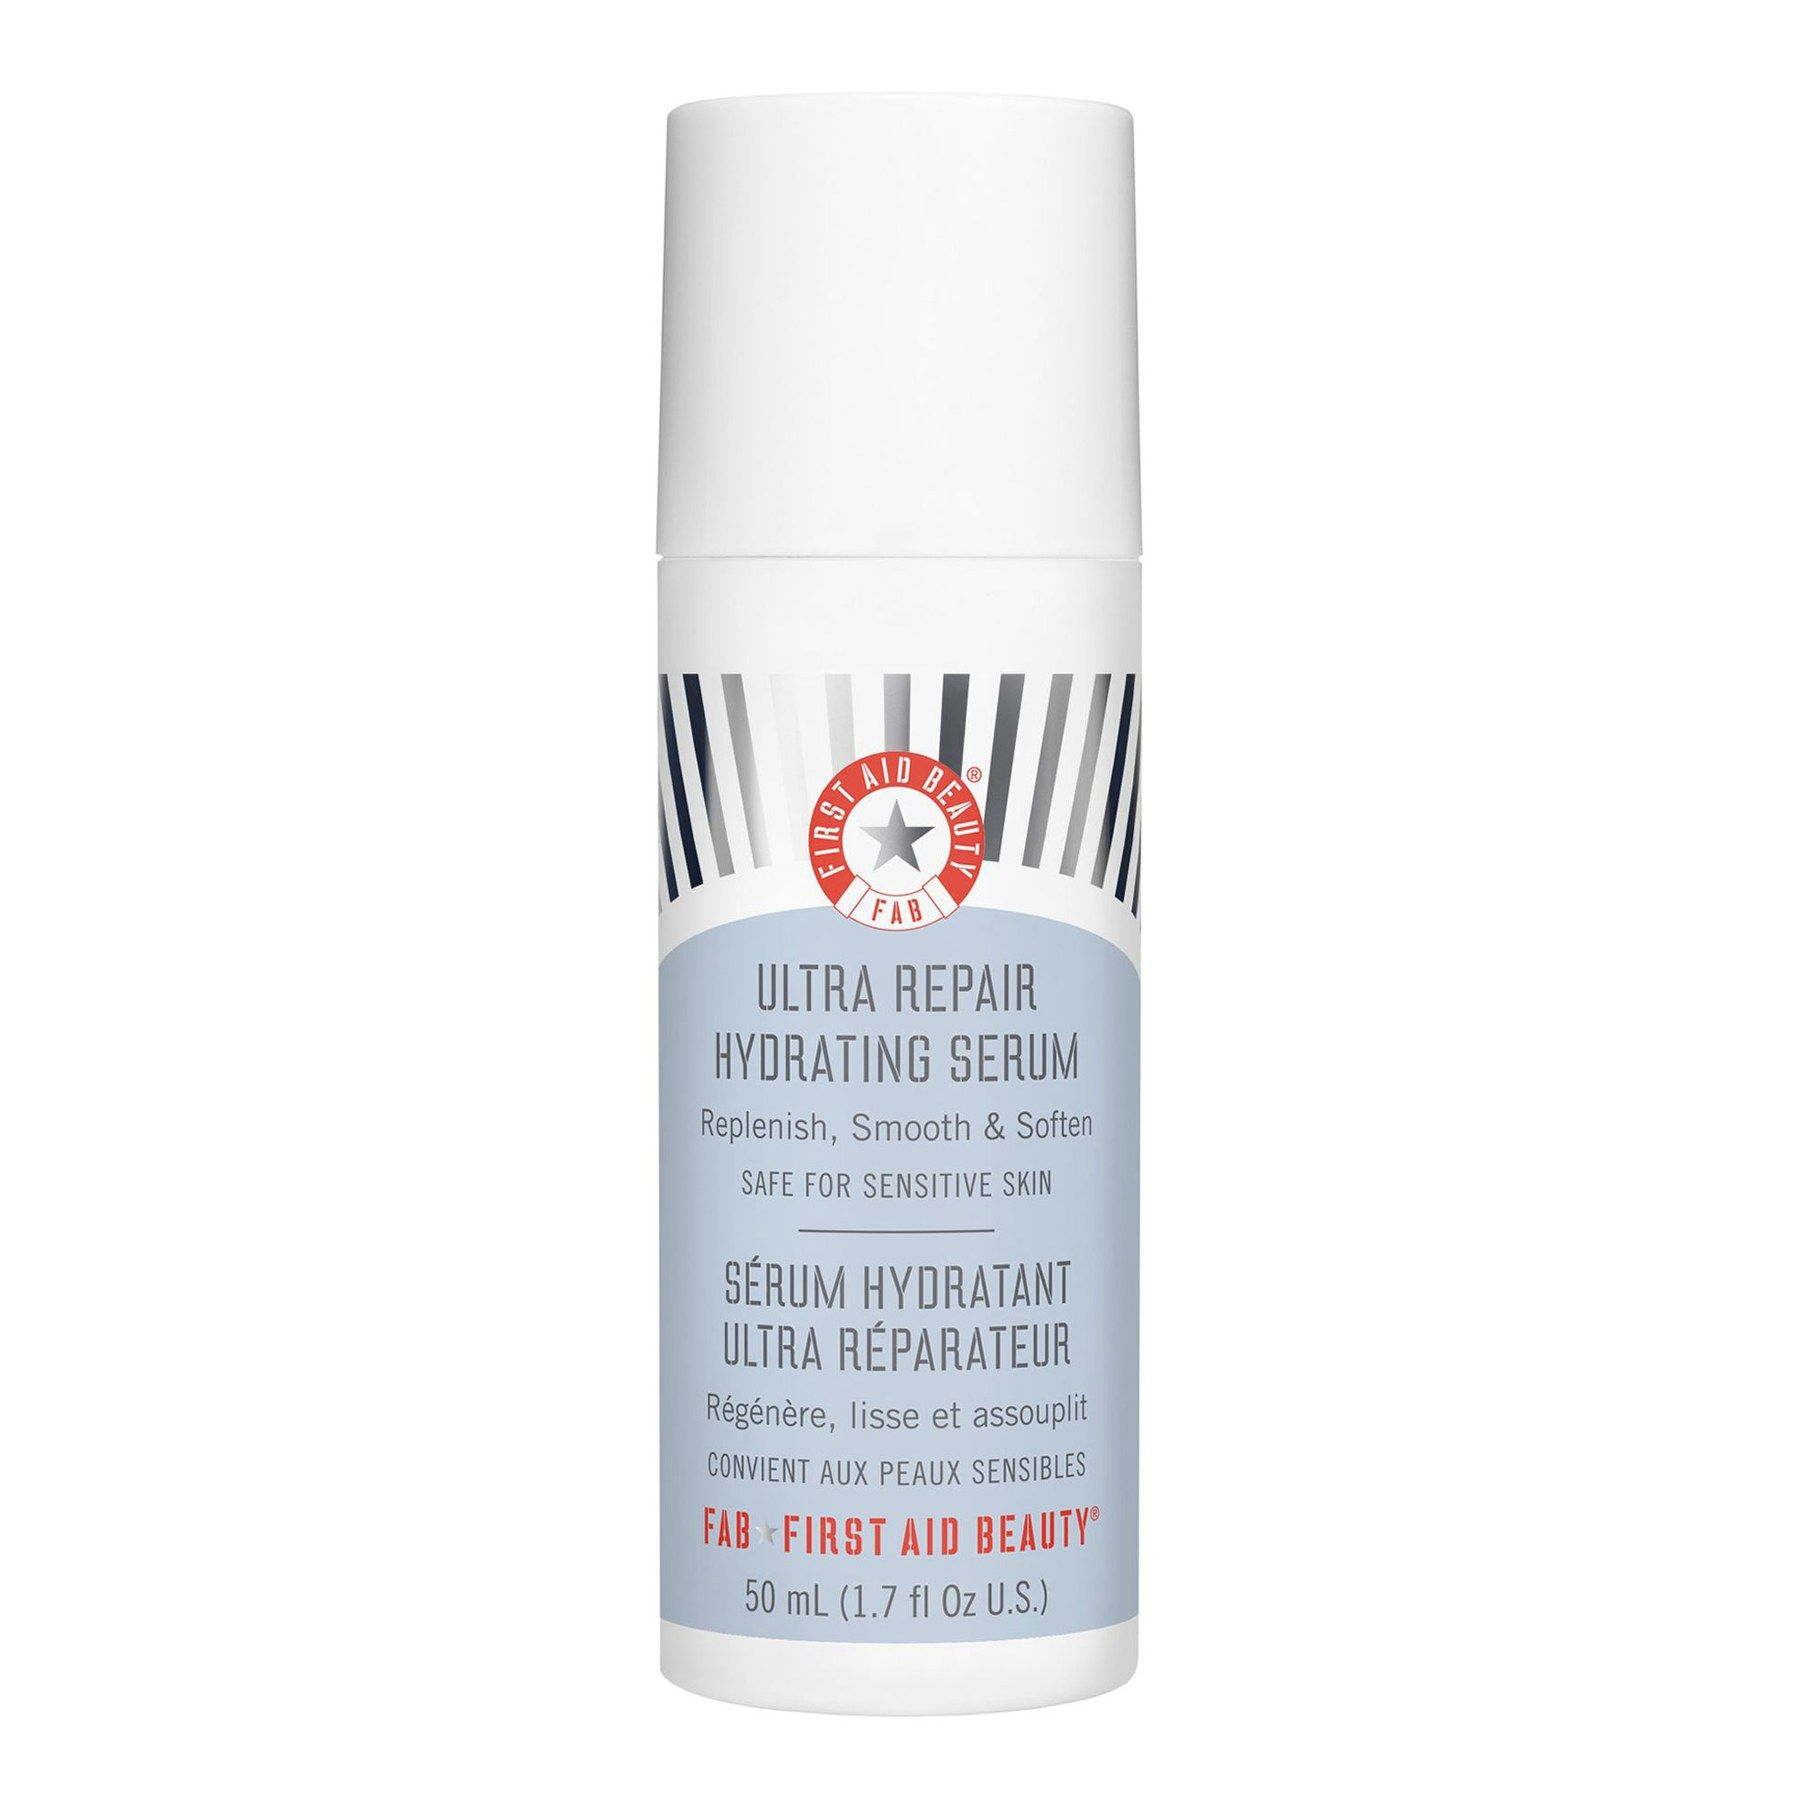 Pin on The ordinary hyaluronic acid